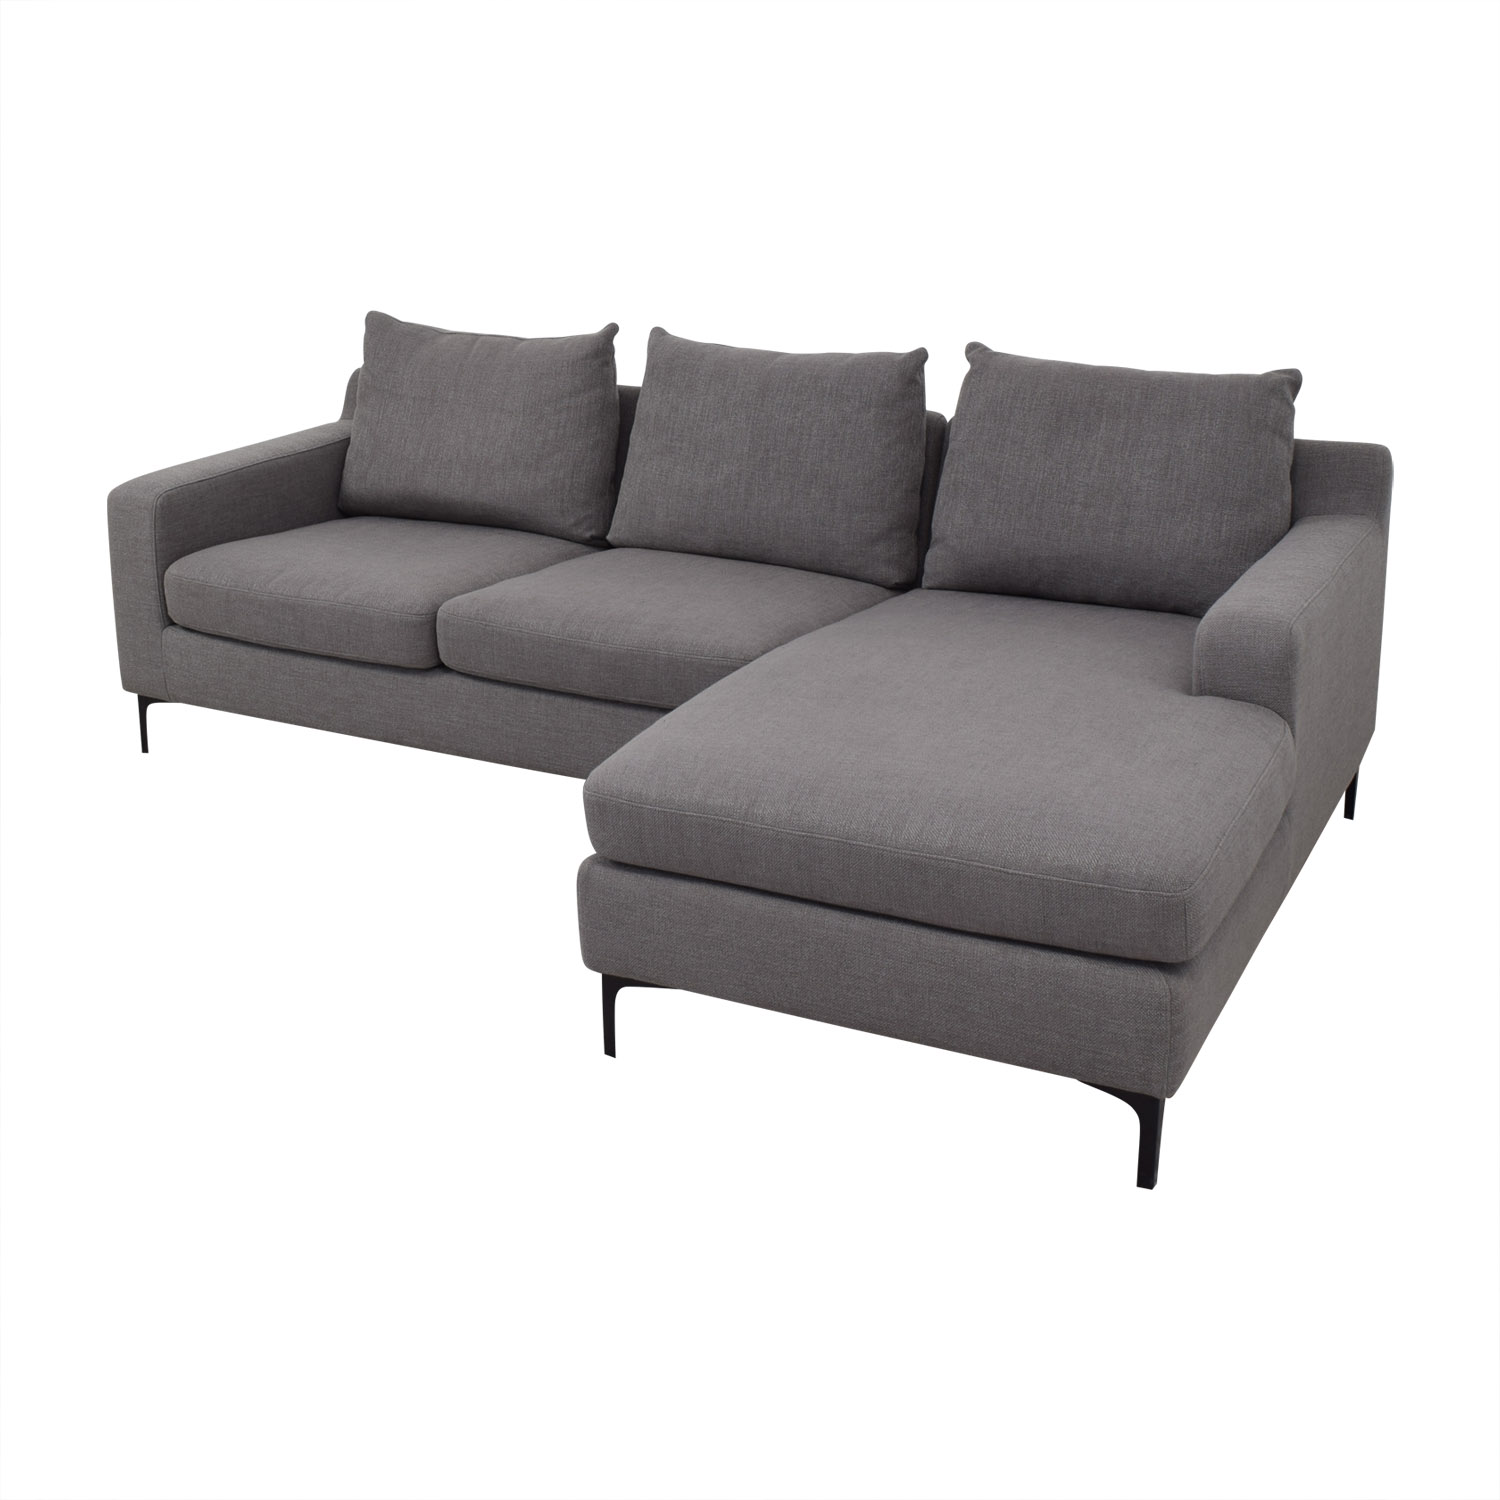 Interior Define Sloan Sectional Sofa Left Chaise Sofas